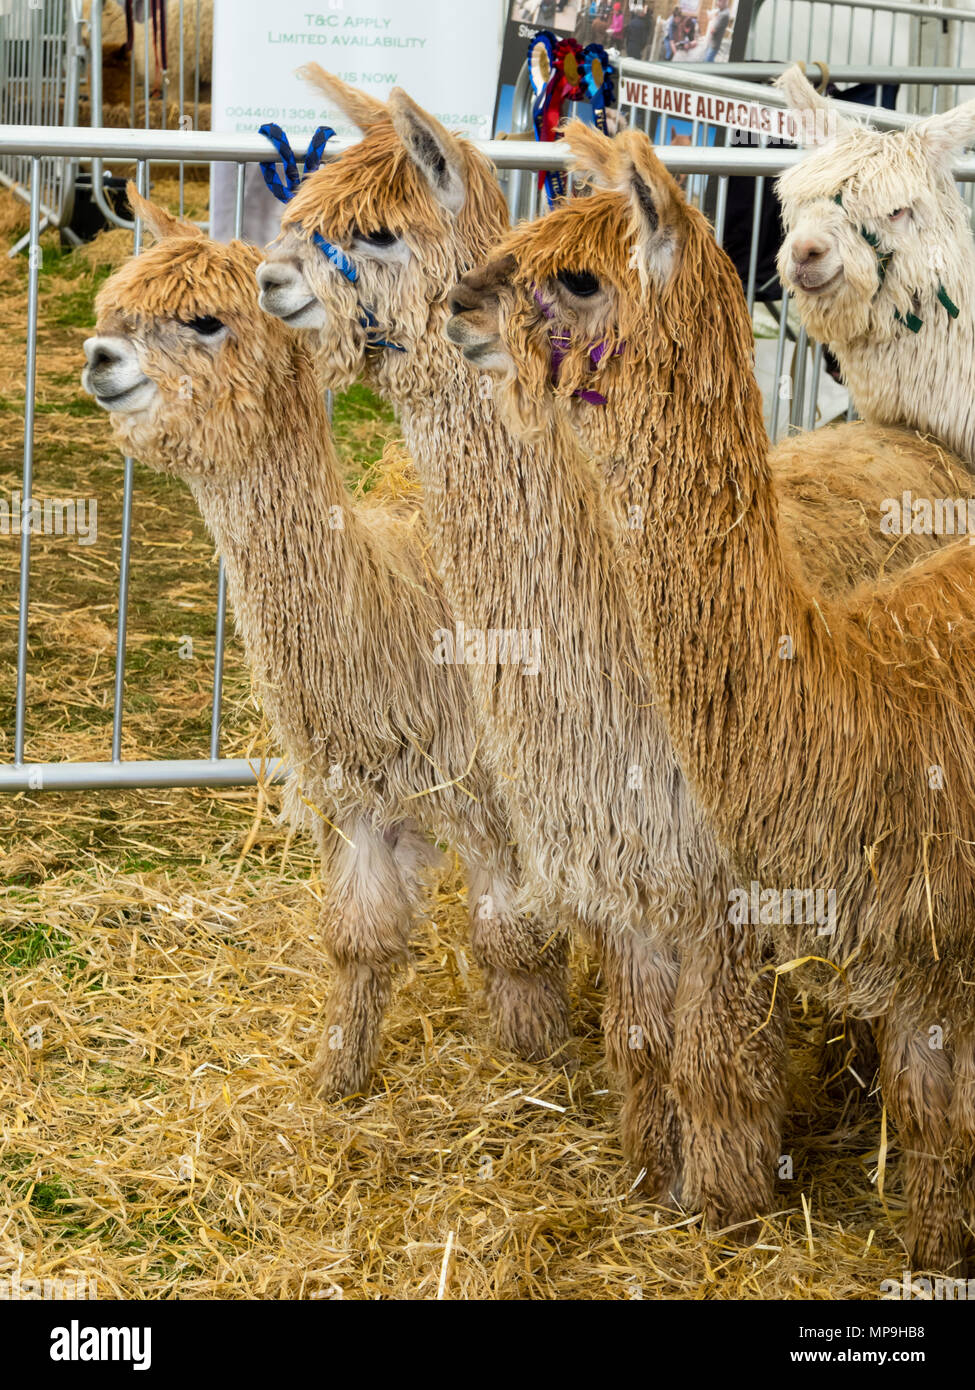 Curious Suri type Alpacas with draping locks of lustrous silky fibre at The Devon County show,2018 - Stock Image